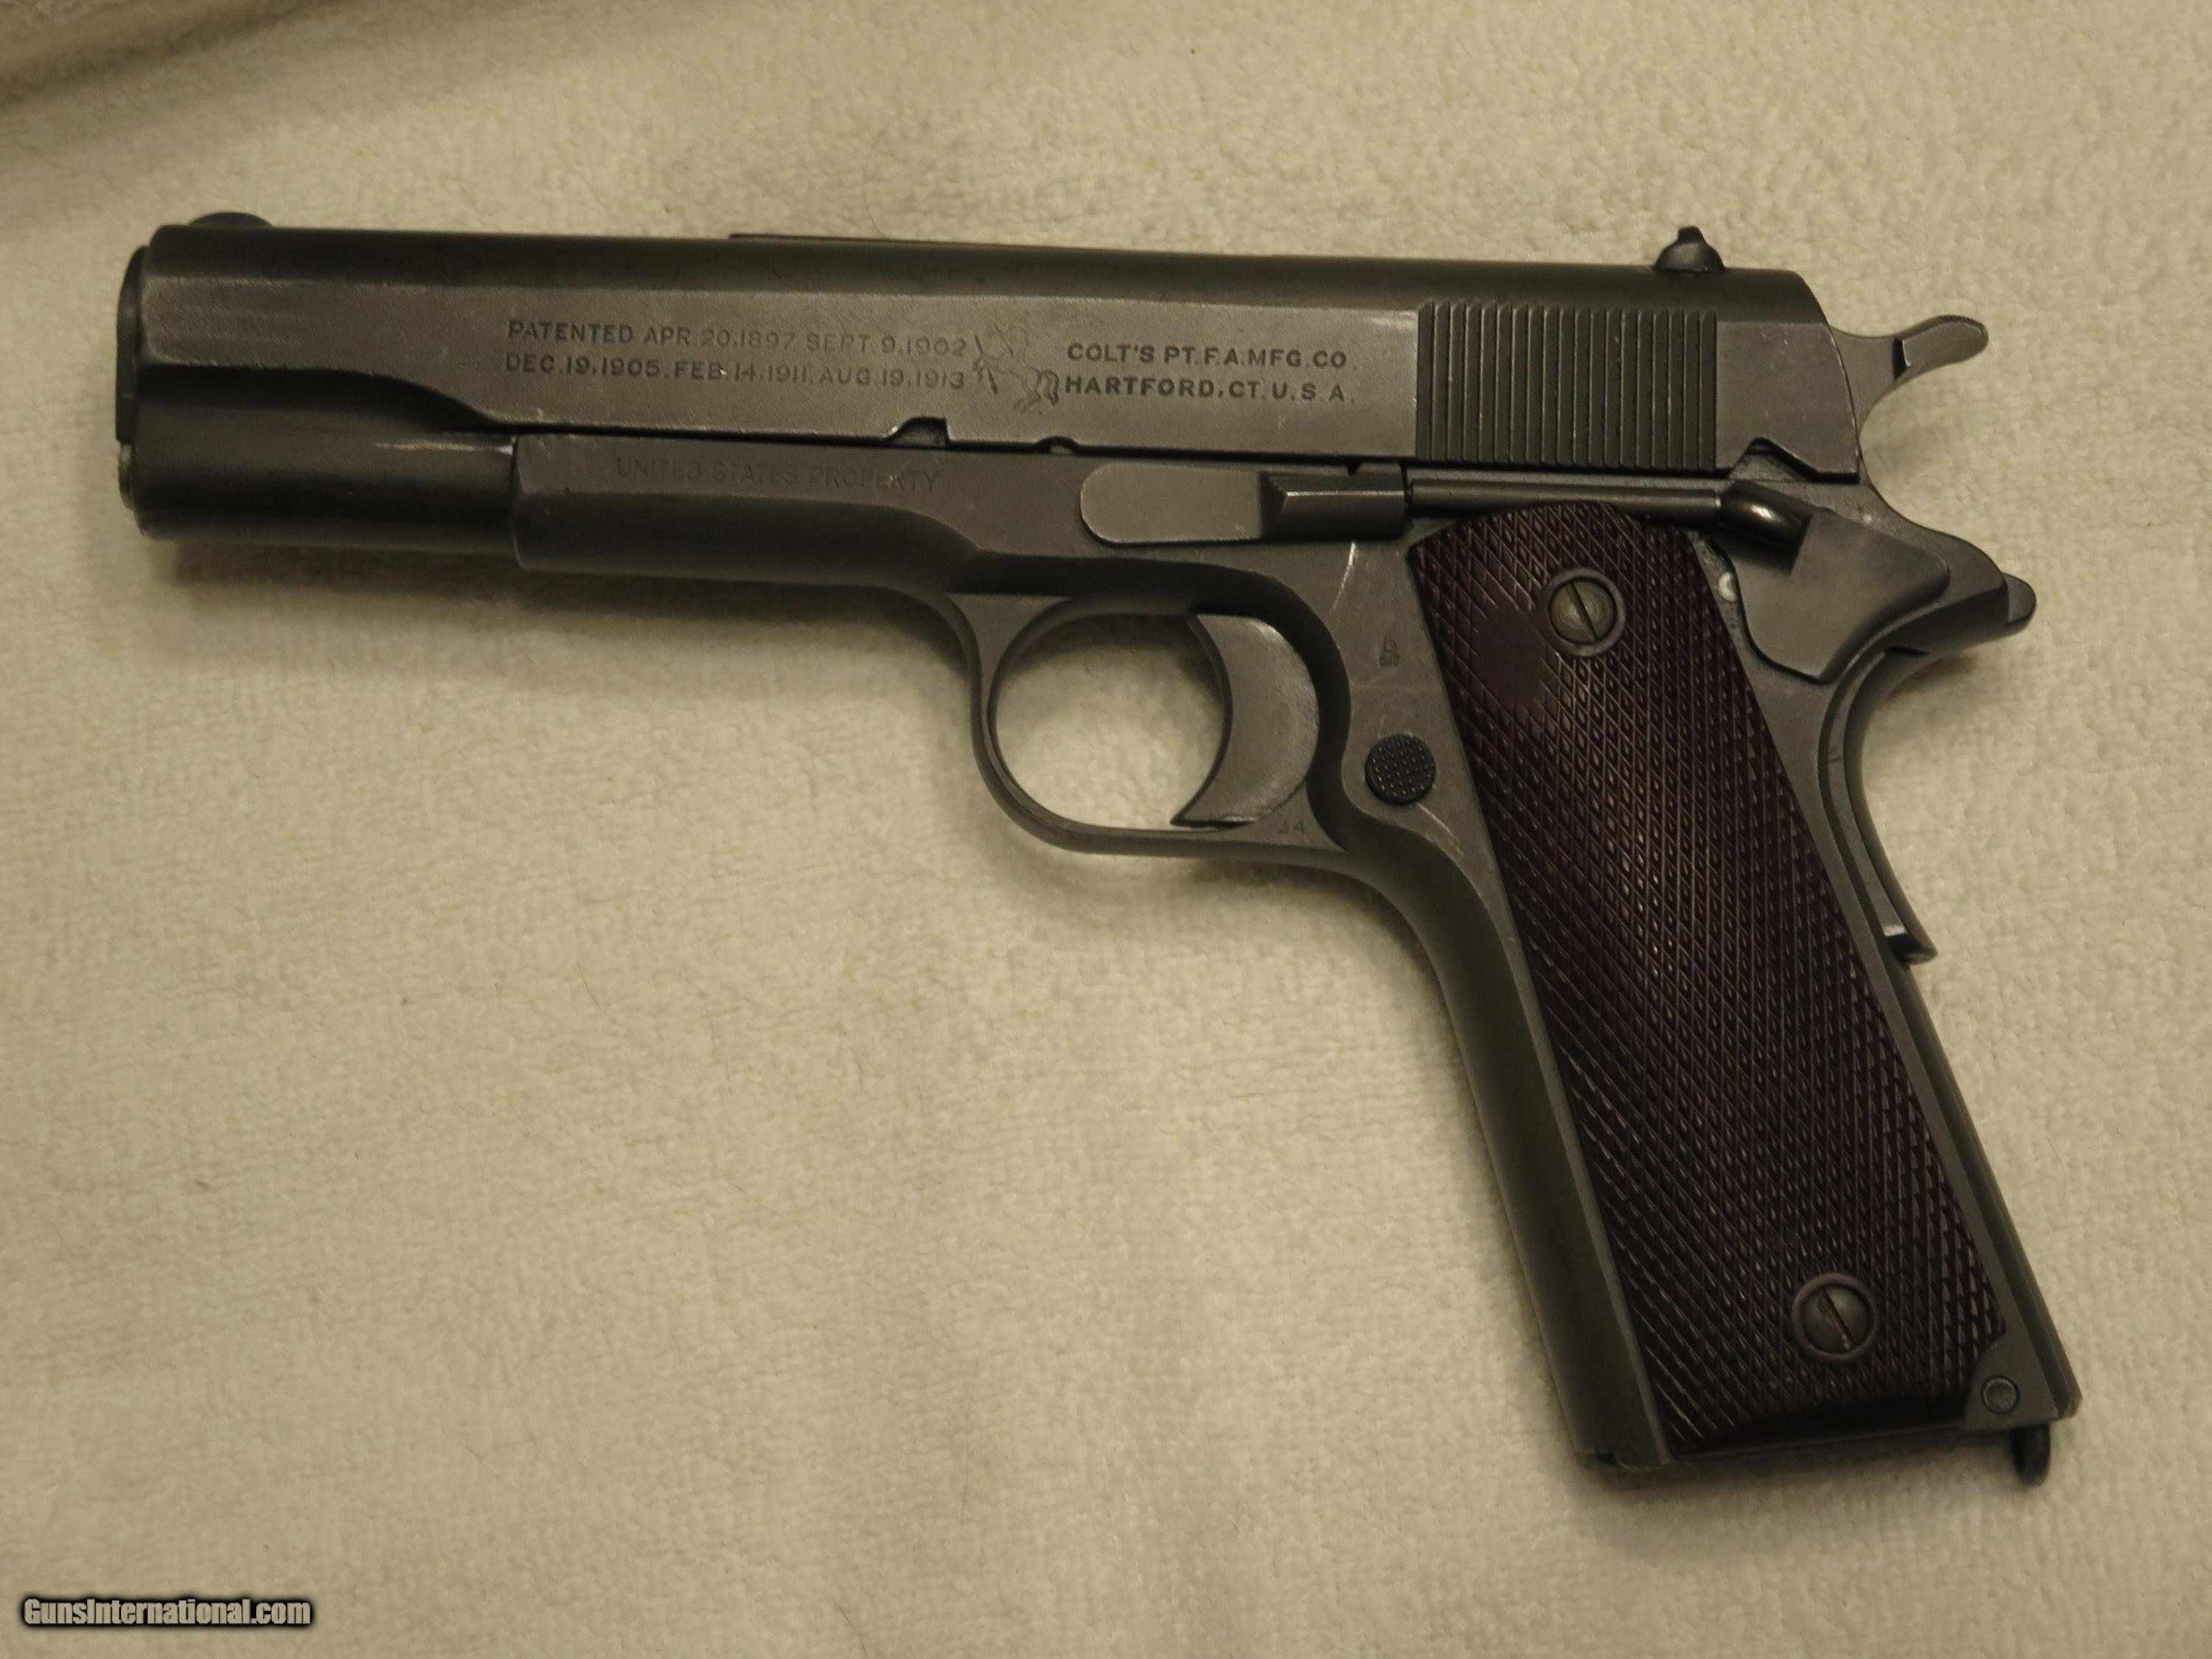 1918 Colt M1911 45 ACP Pistol, RIA Rework with Heart Shaped Grip ...